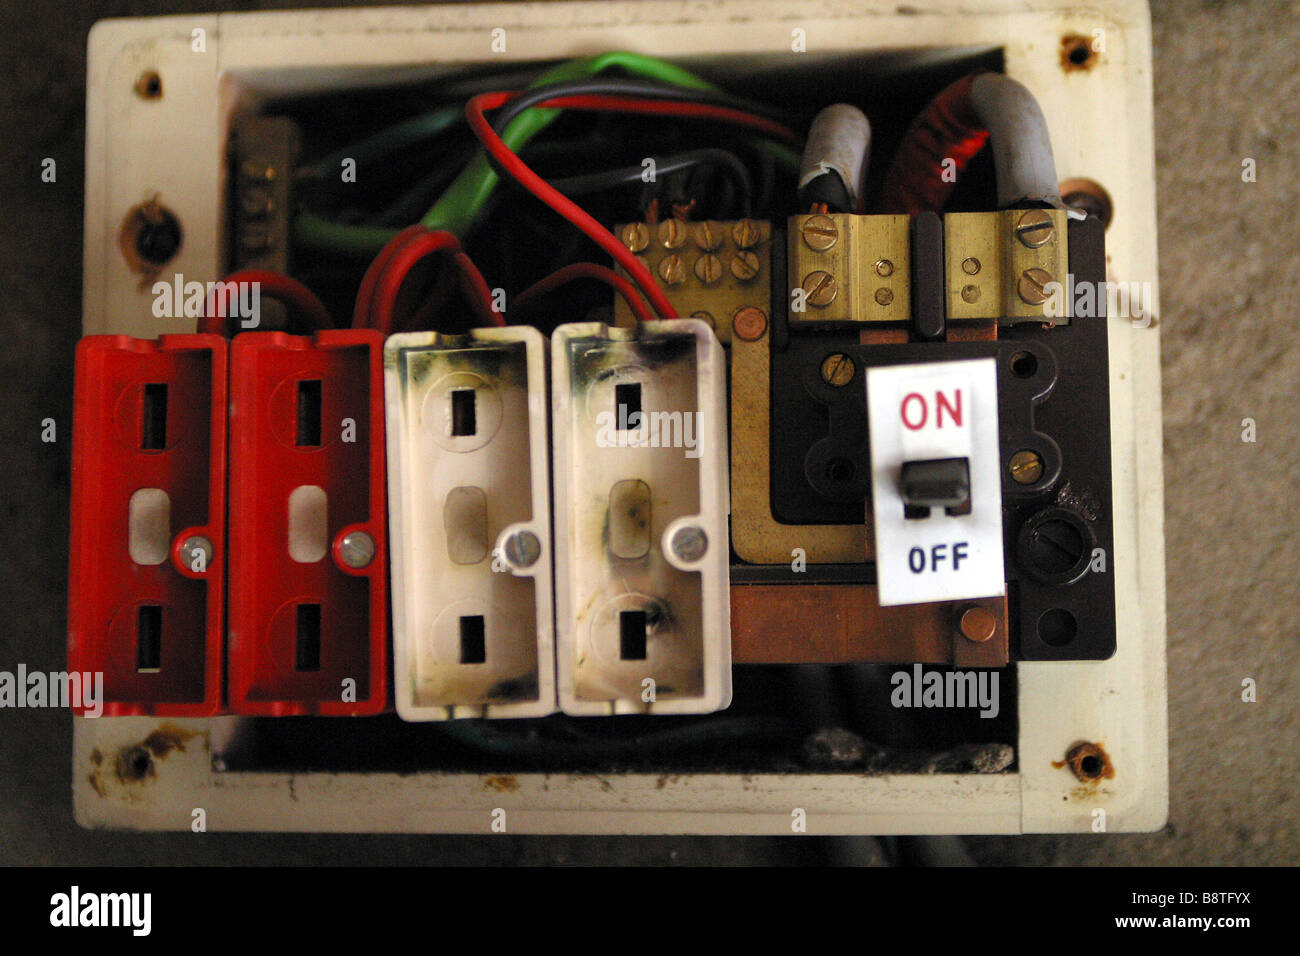 electric fuse box types fuse box stock footage video shutterstock old style consumer unit electrical wire fuse box stock photo stock photo old style consumer unit